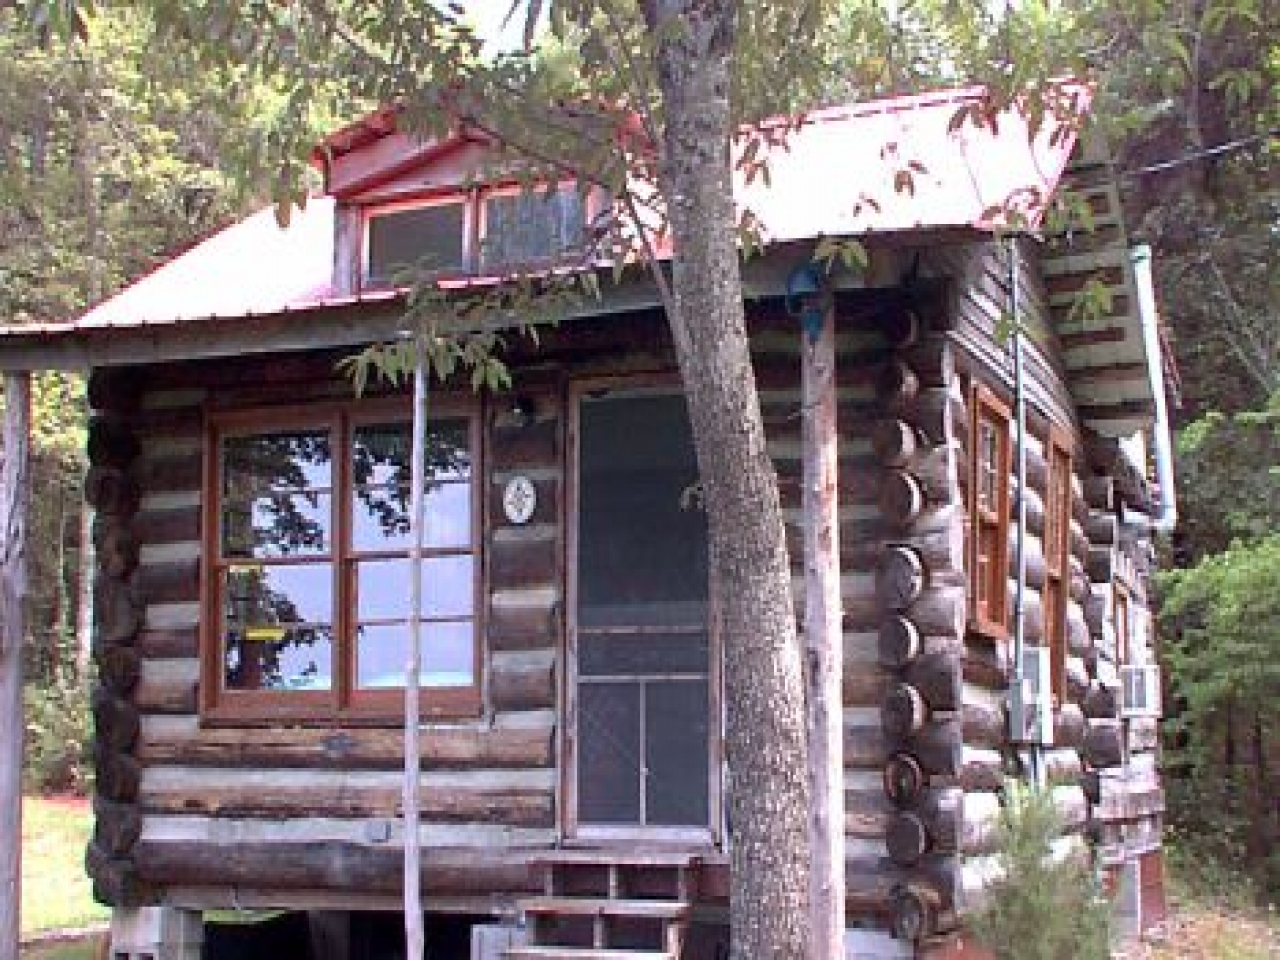 Building Log Cabins Inside A Small Log Cabins Real Log Cabin Treesranch Com